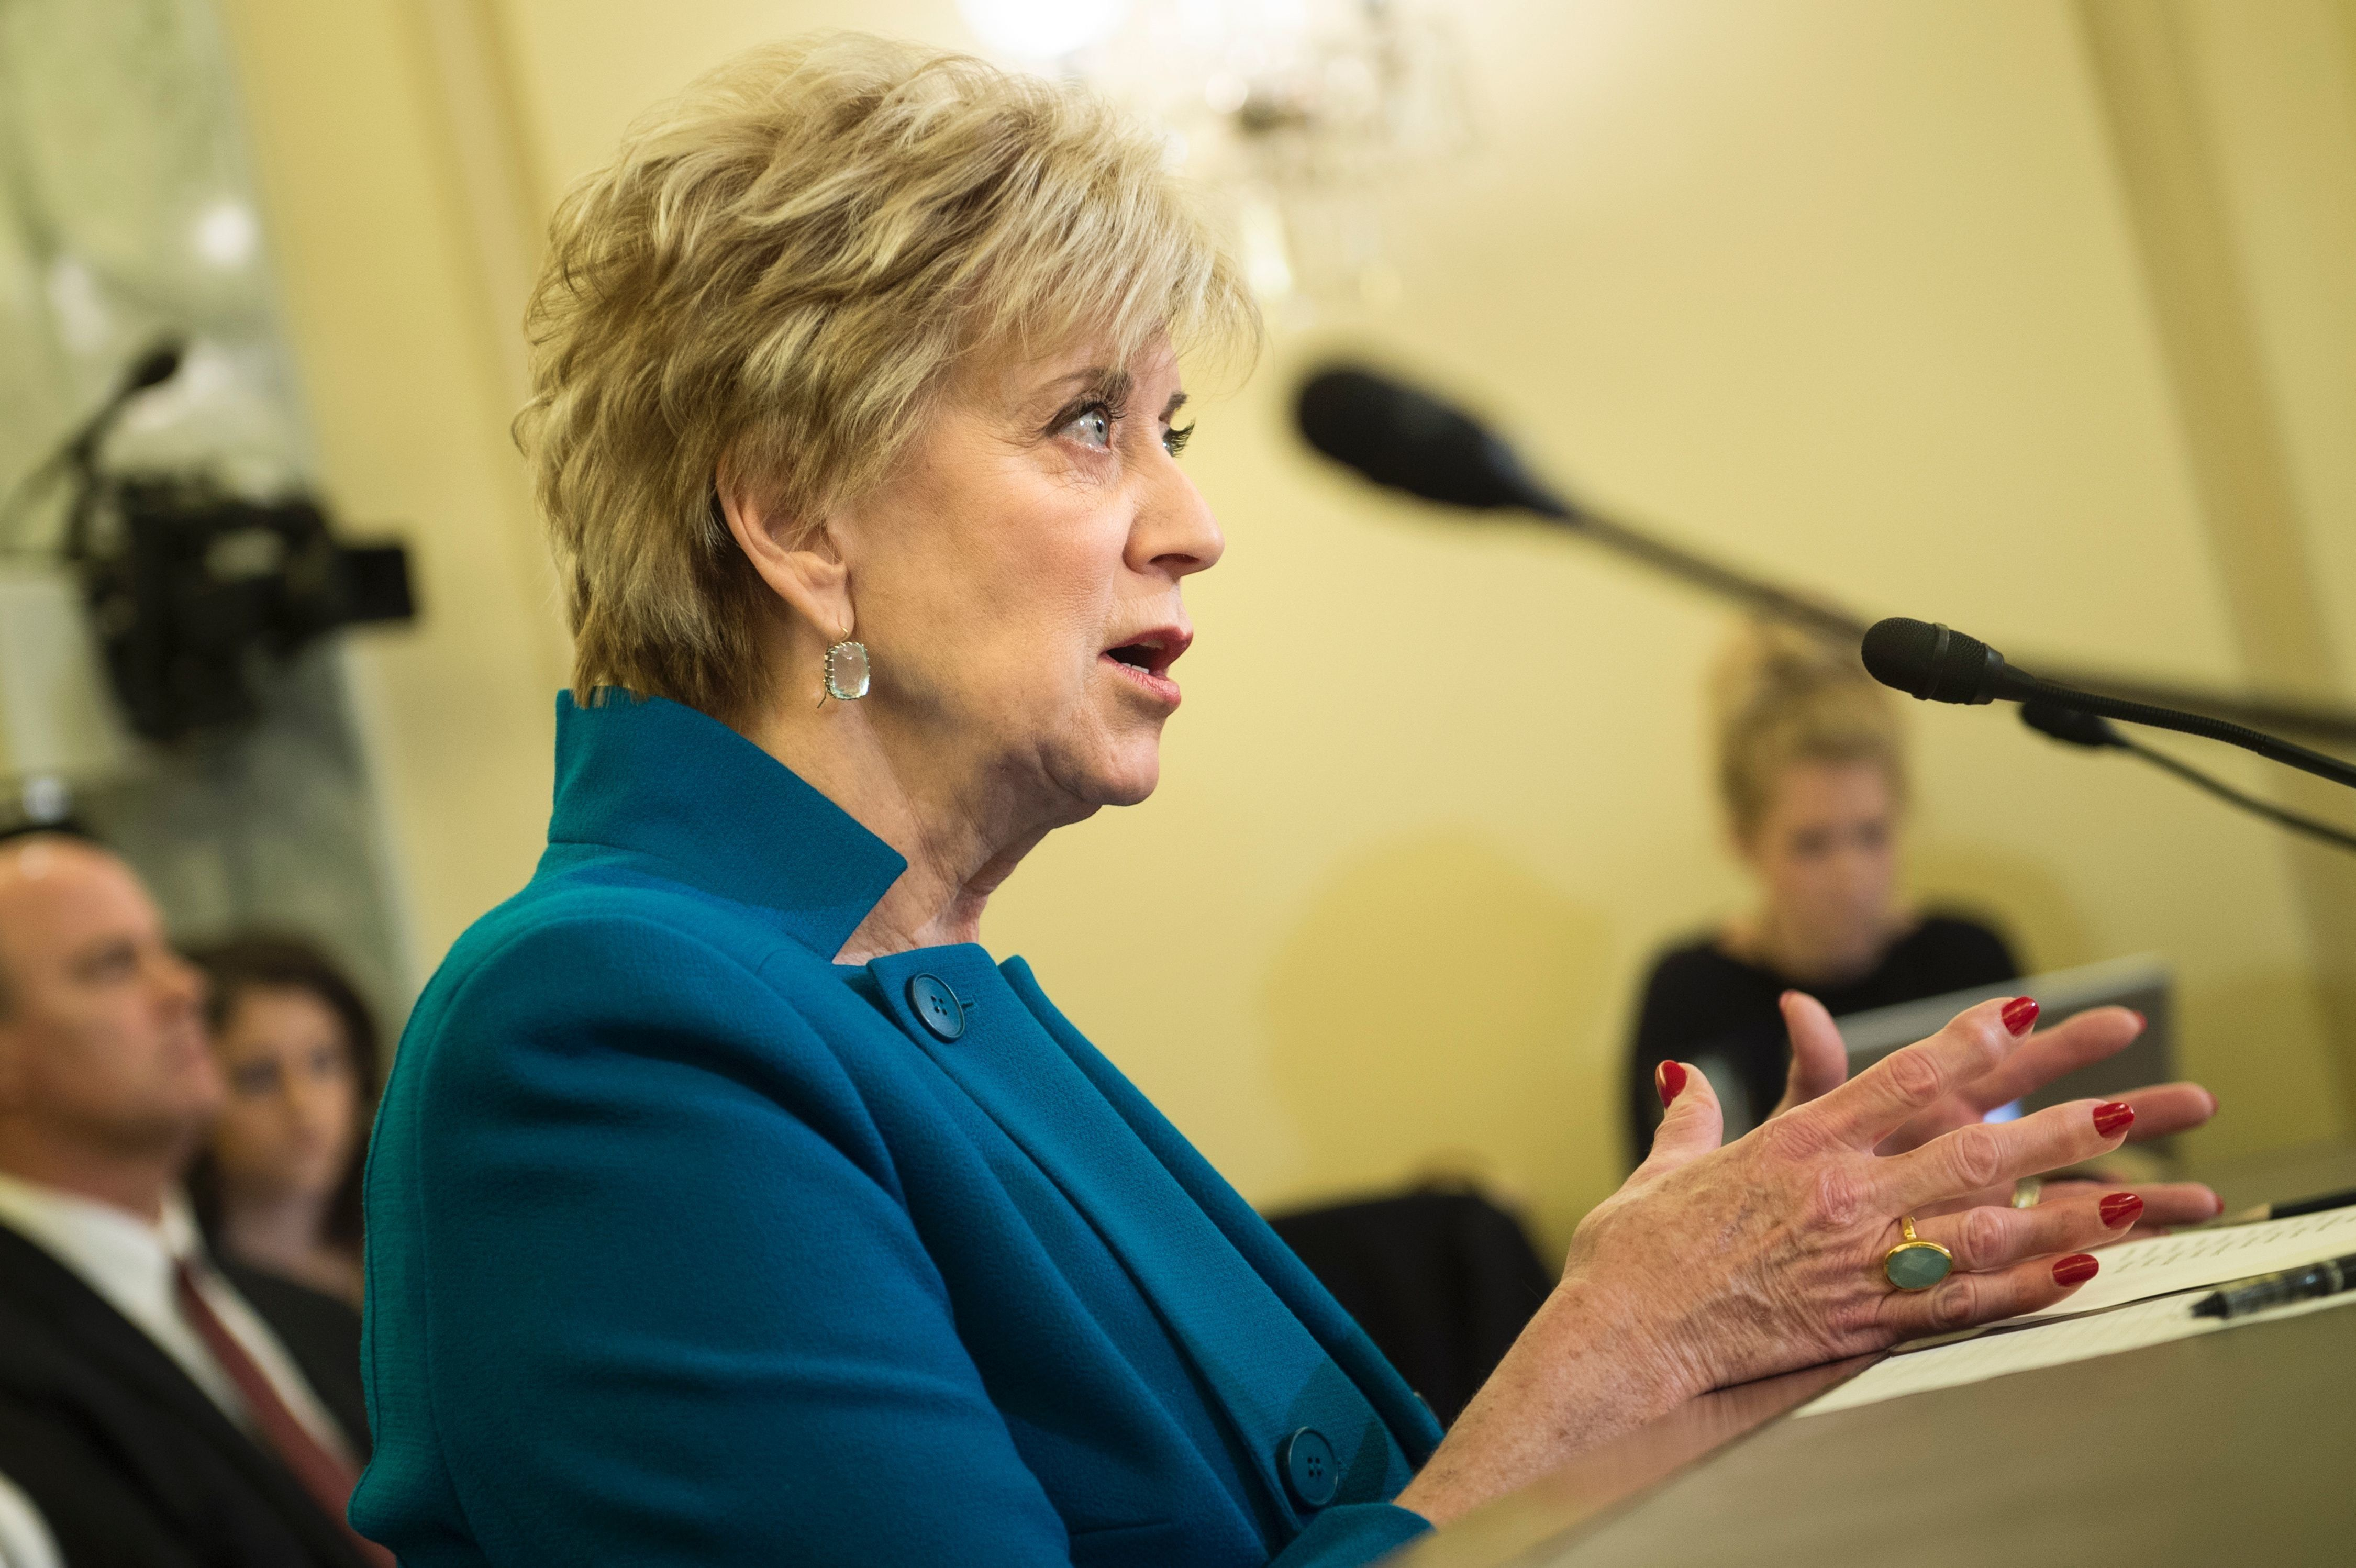 Linda McMahon speaks during her confirmation hearing for administrator of the Small Business Administration before the Senate Small Business and Entrepreneurship Committee on Capitol Hill January 24, 2017 in Washington, DC. / AFP / Brendan Smialowski        (Photo credit should read BRENDAN SMIALOWSKI/AFP/Getty Images)